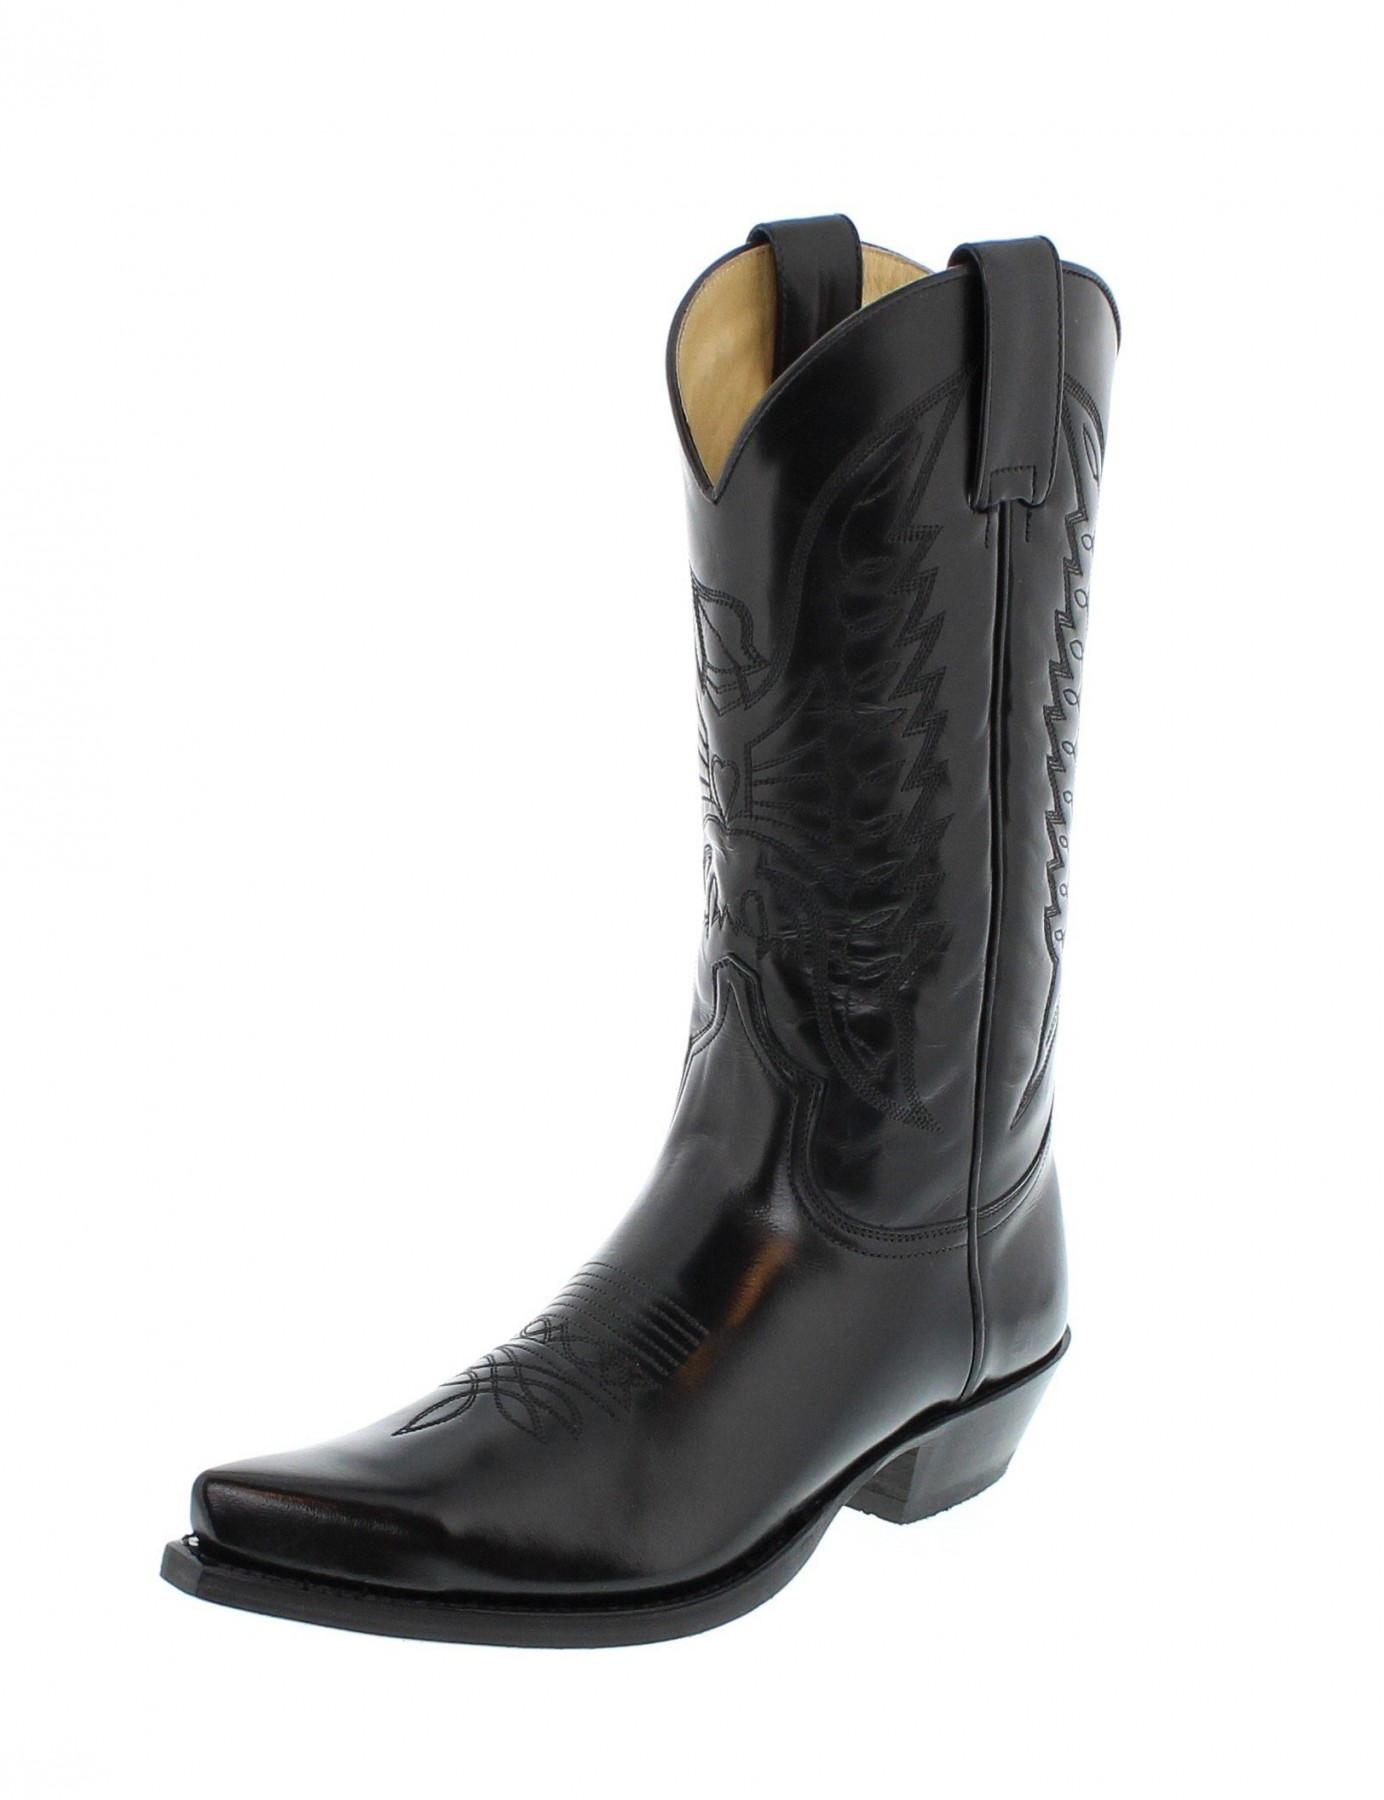 sendra boots 2073 florentic negro westernstiefel schwarz. Black Bedroom Furniture Sets. Home Design Ideas